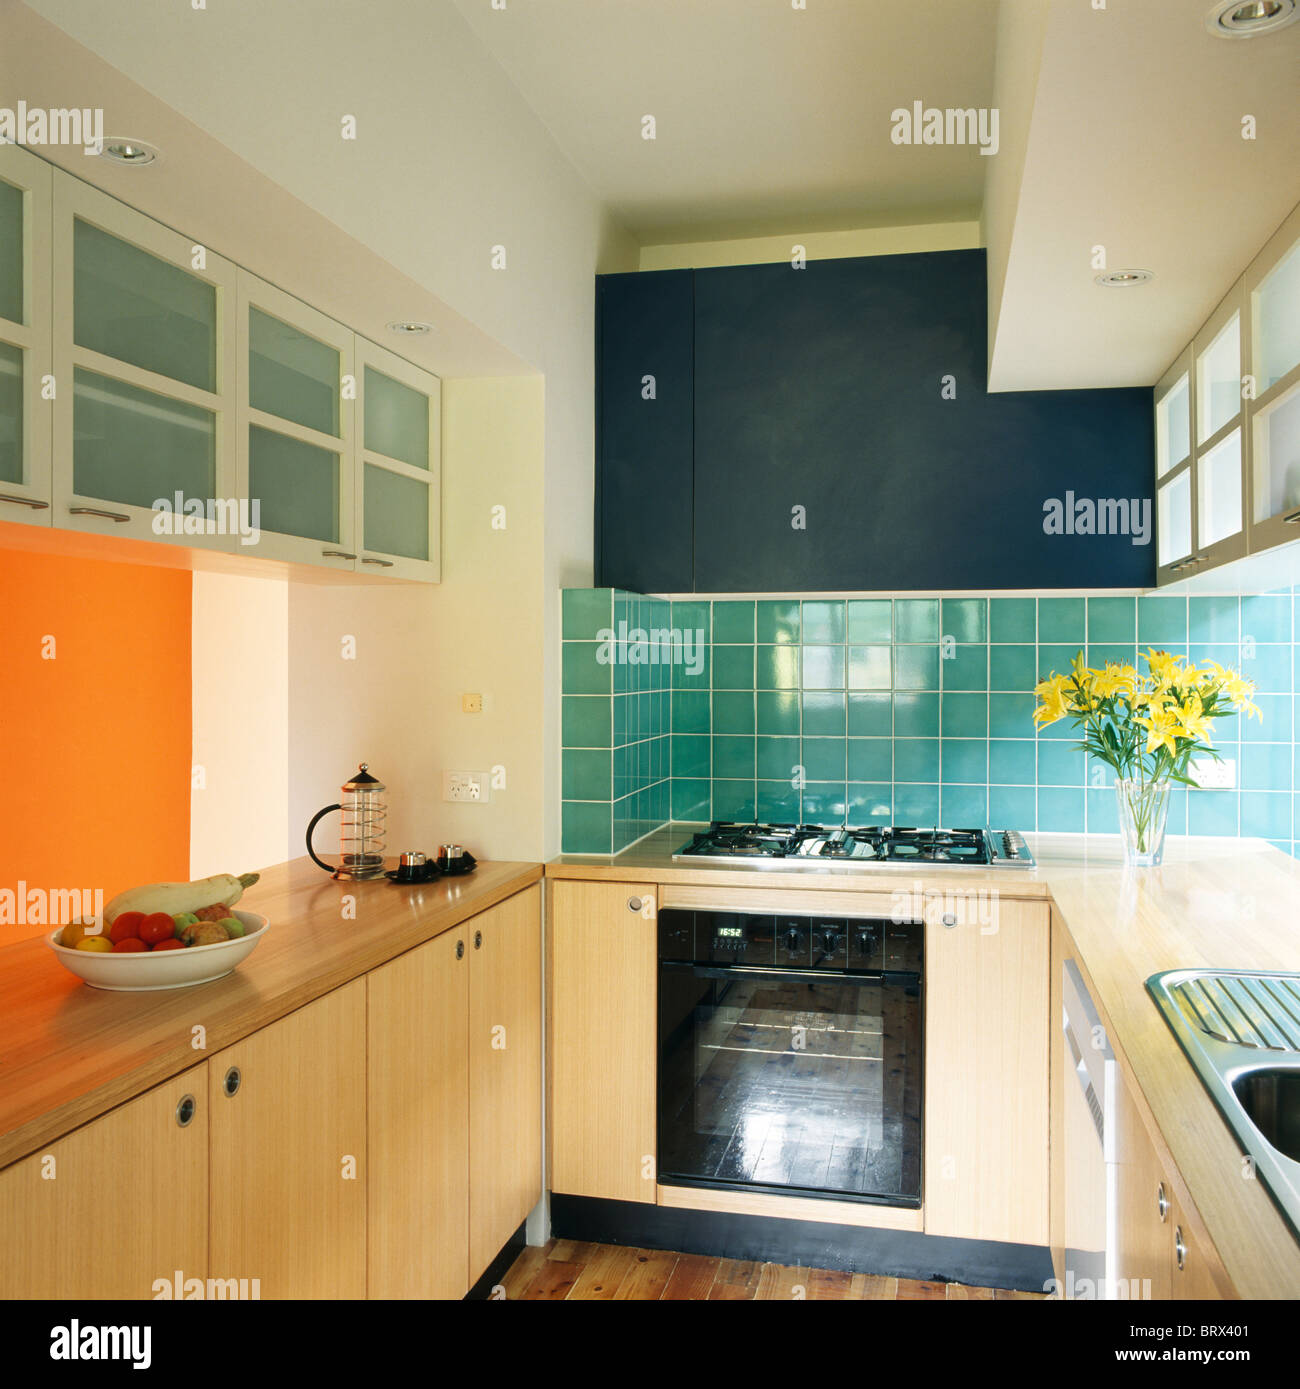 Kitchen Wall Tiles Modern: Turquoise Wall Tiles In Modern Kitchen With Pale Wood